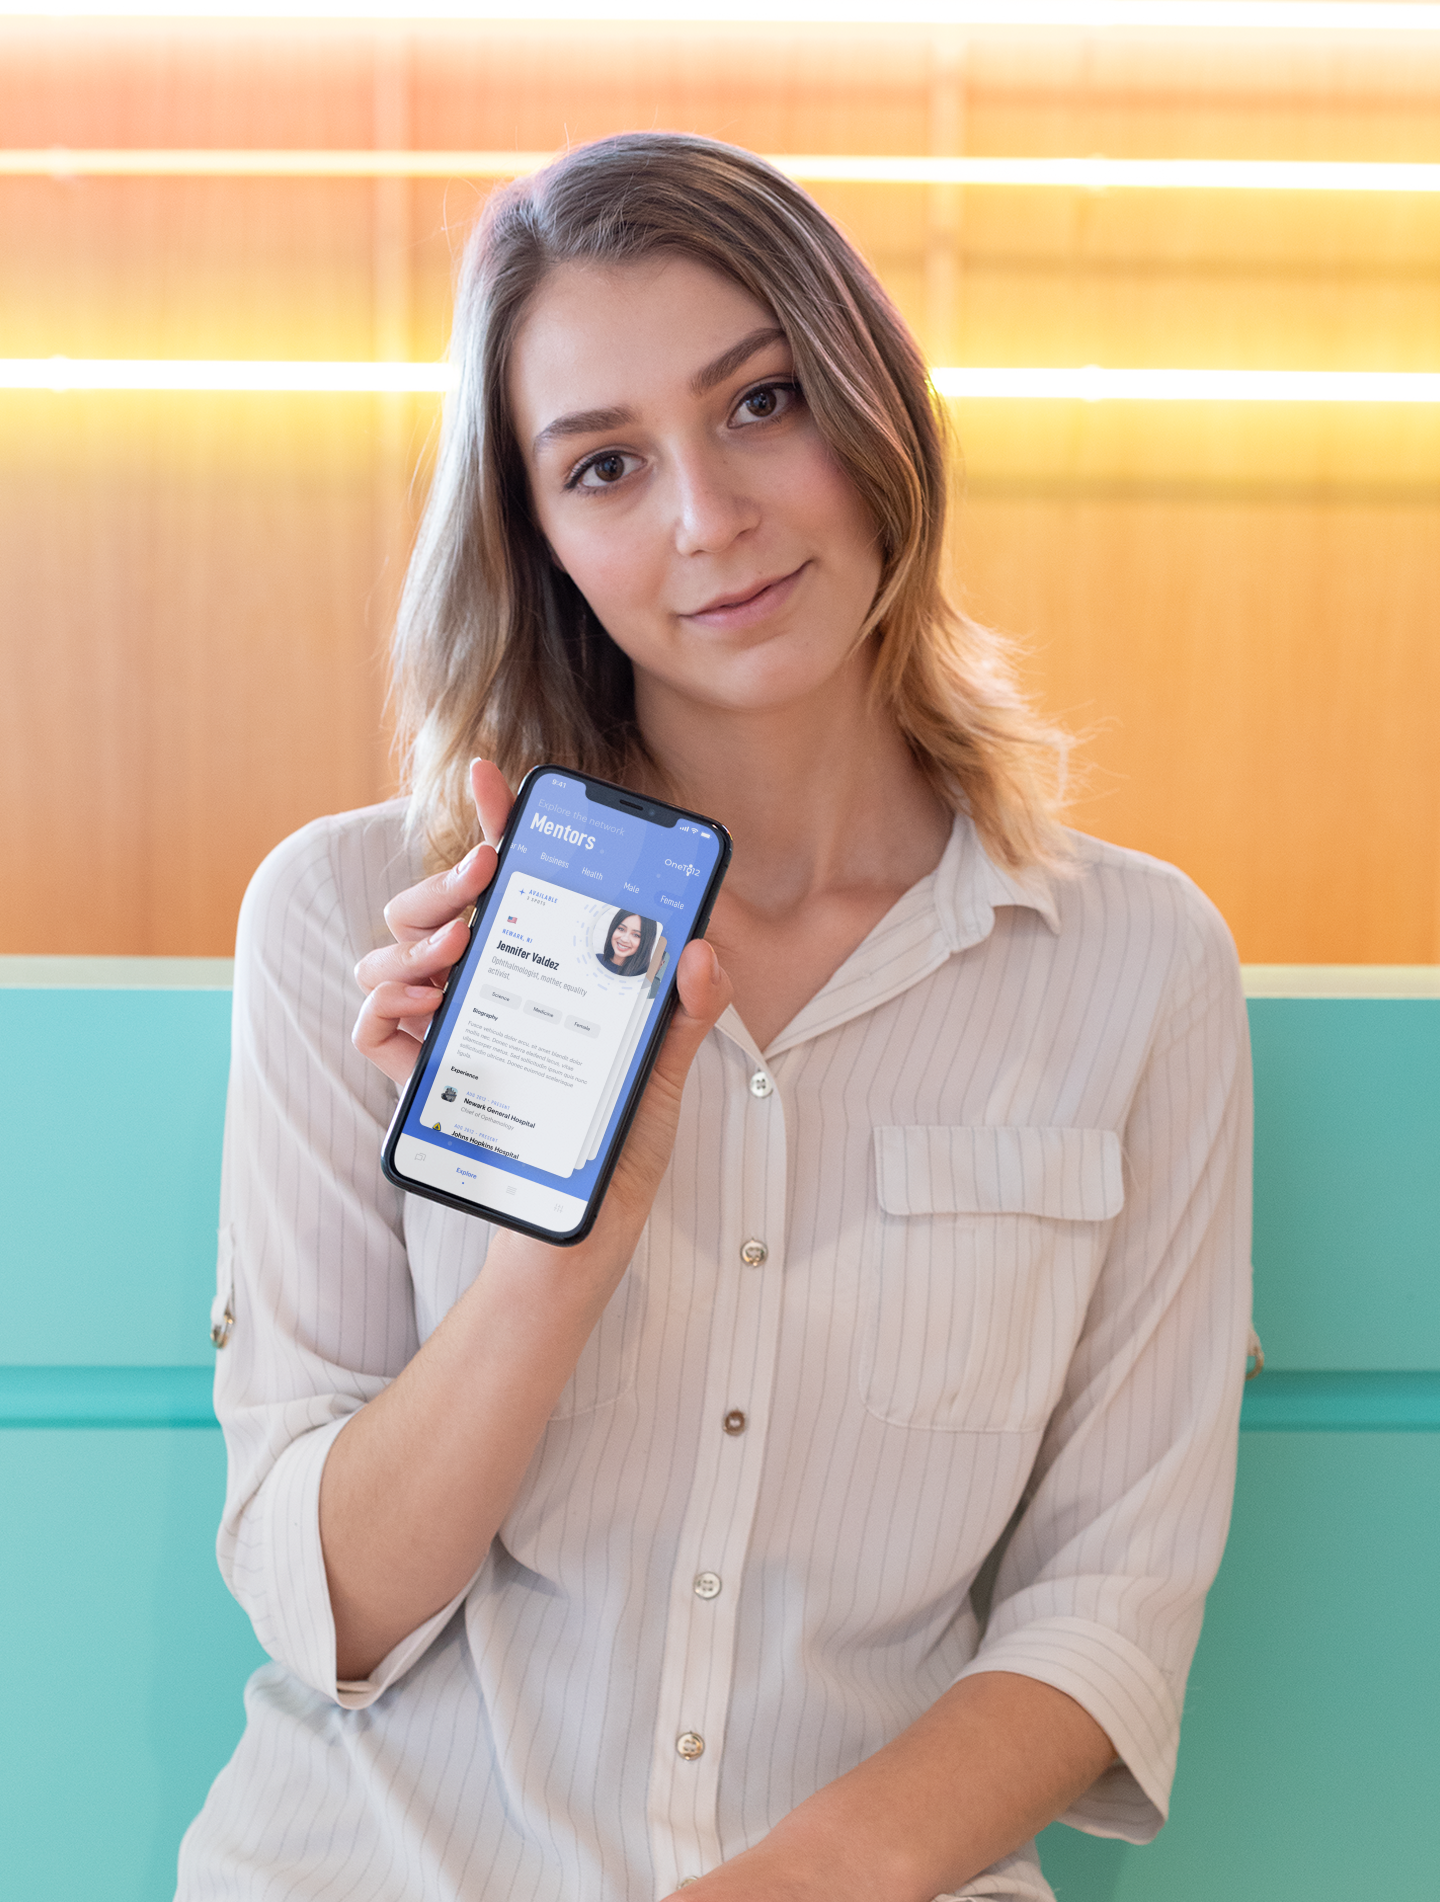 mockup-of-a-cute-girl-holding-her-iphone-xs-max-in-a-cool-illuminated-room-25433.png